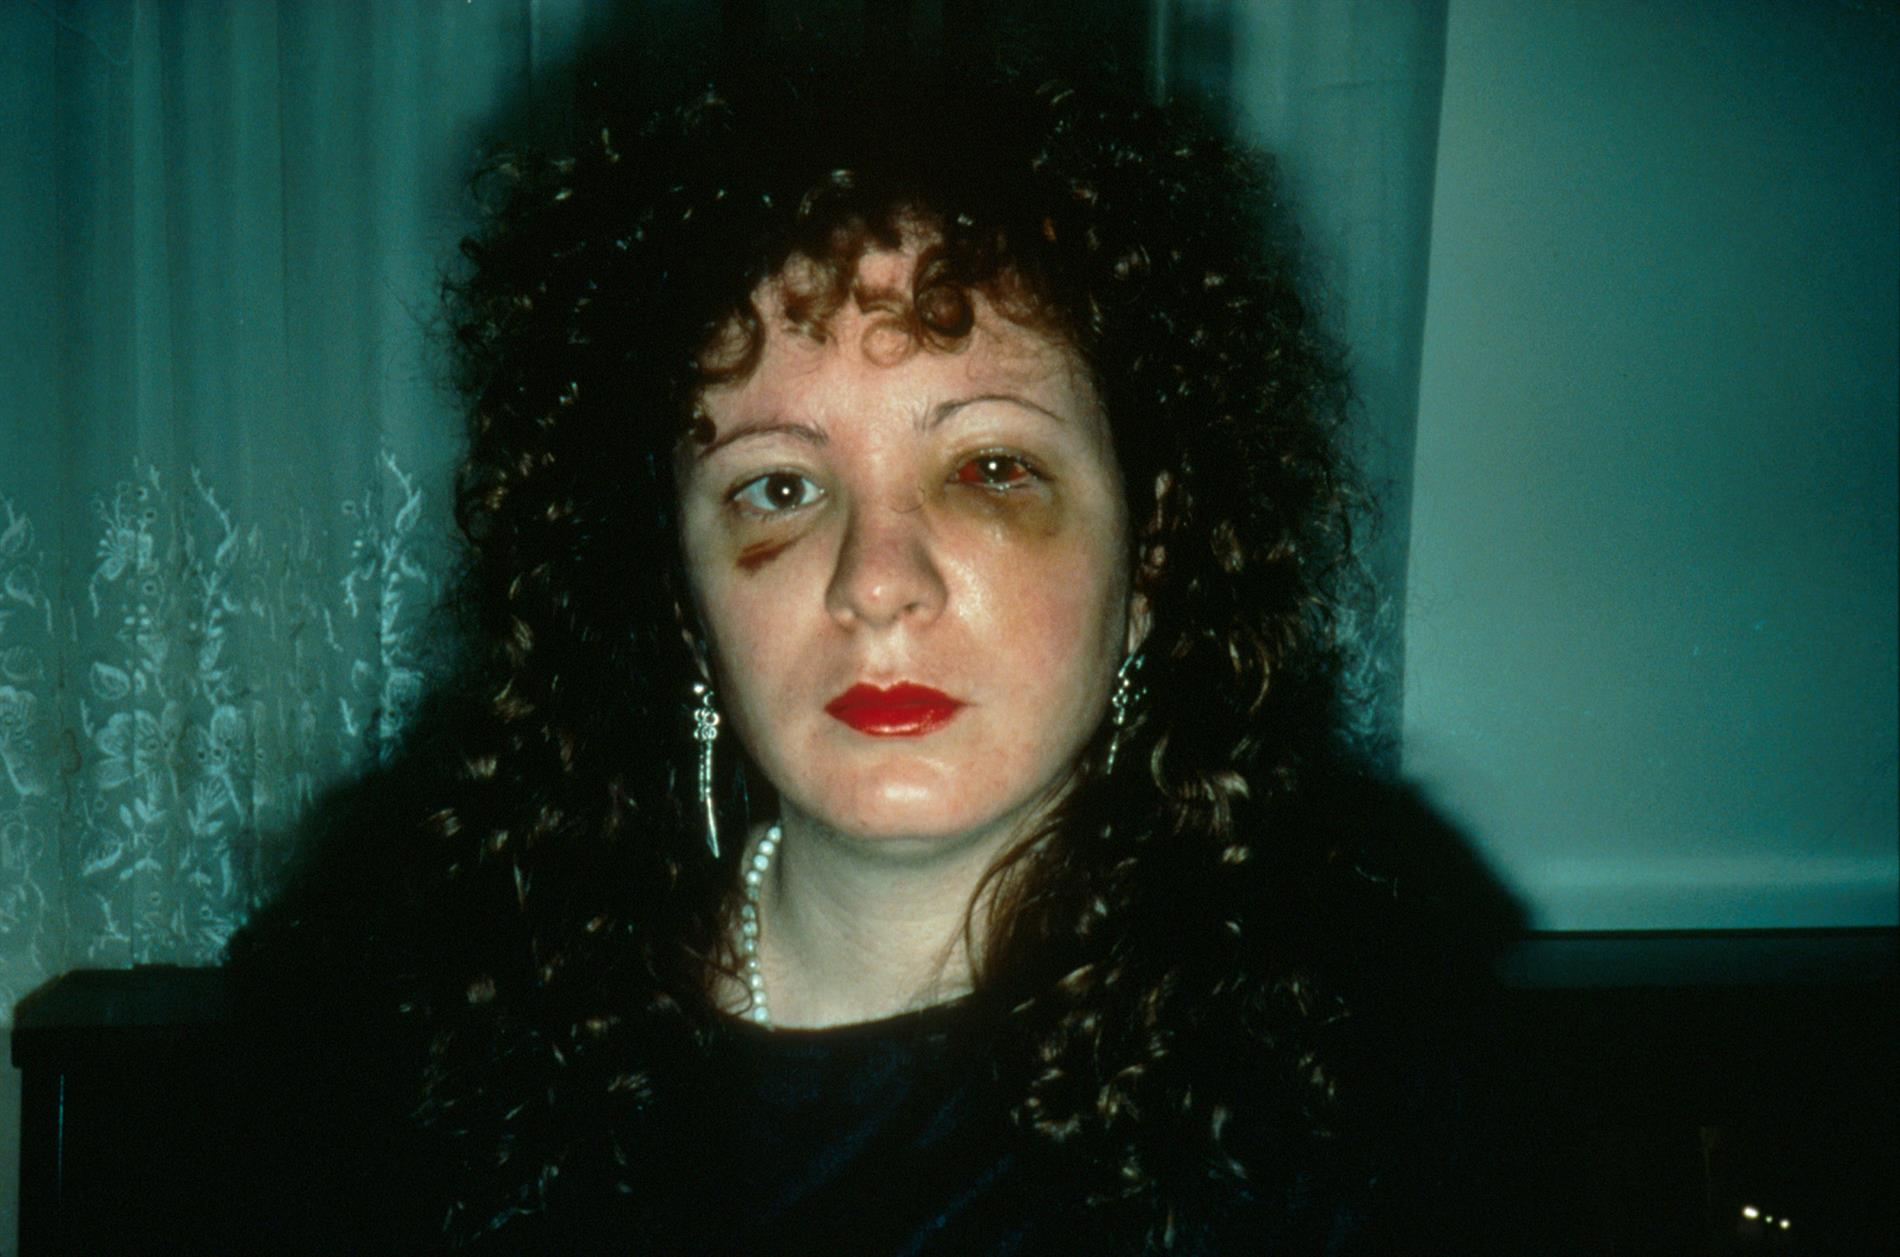 Nan_goldin-Custom-4.jpg